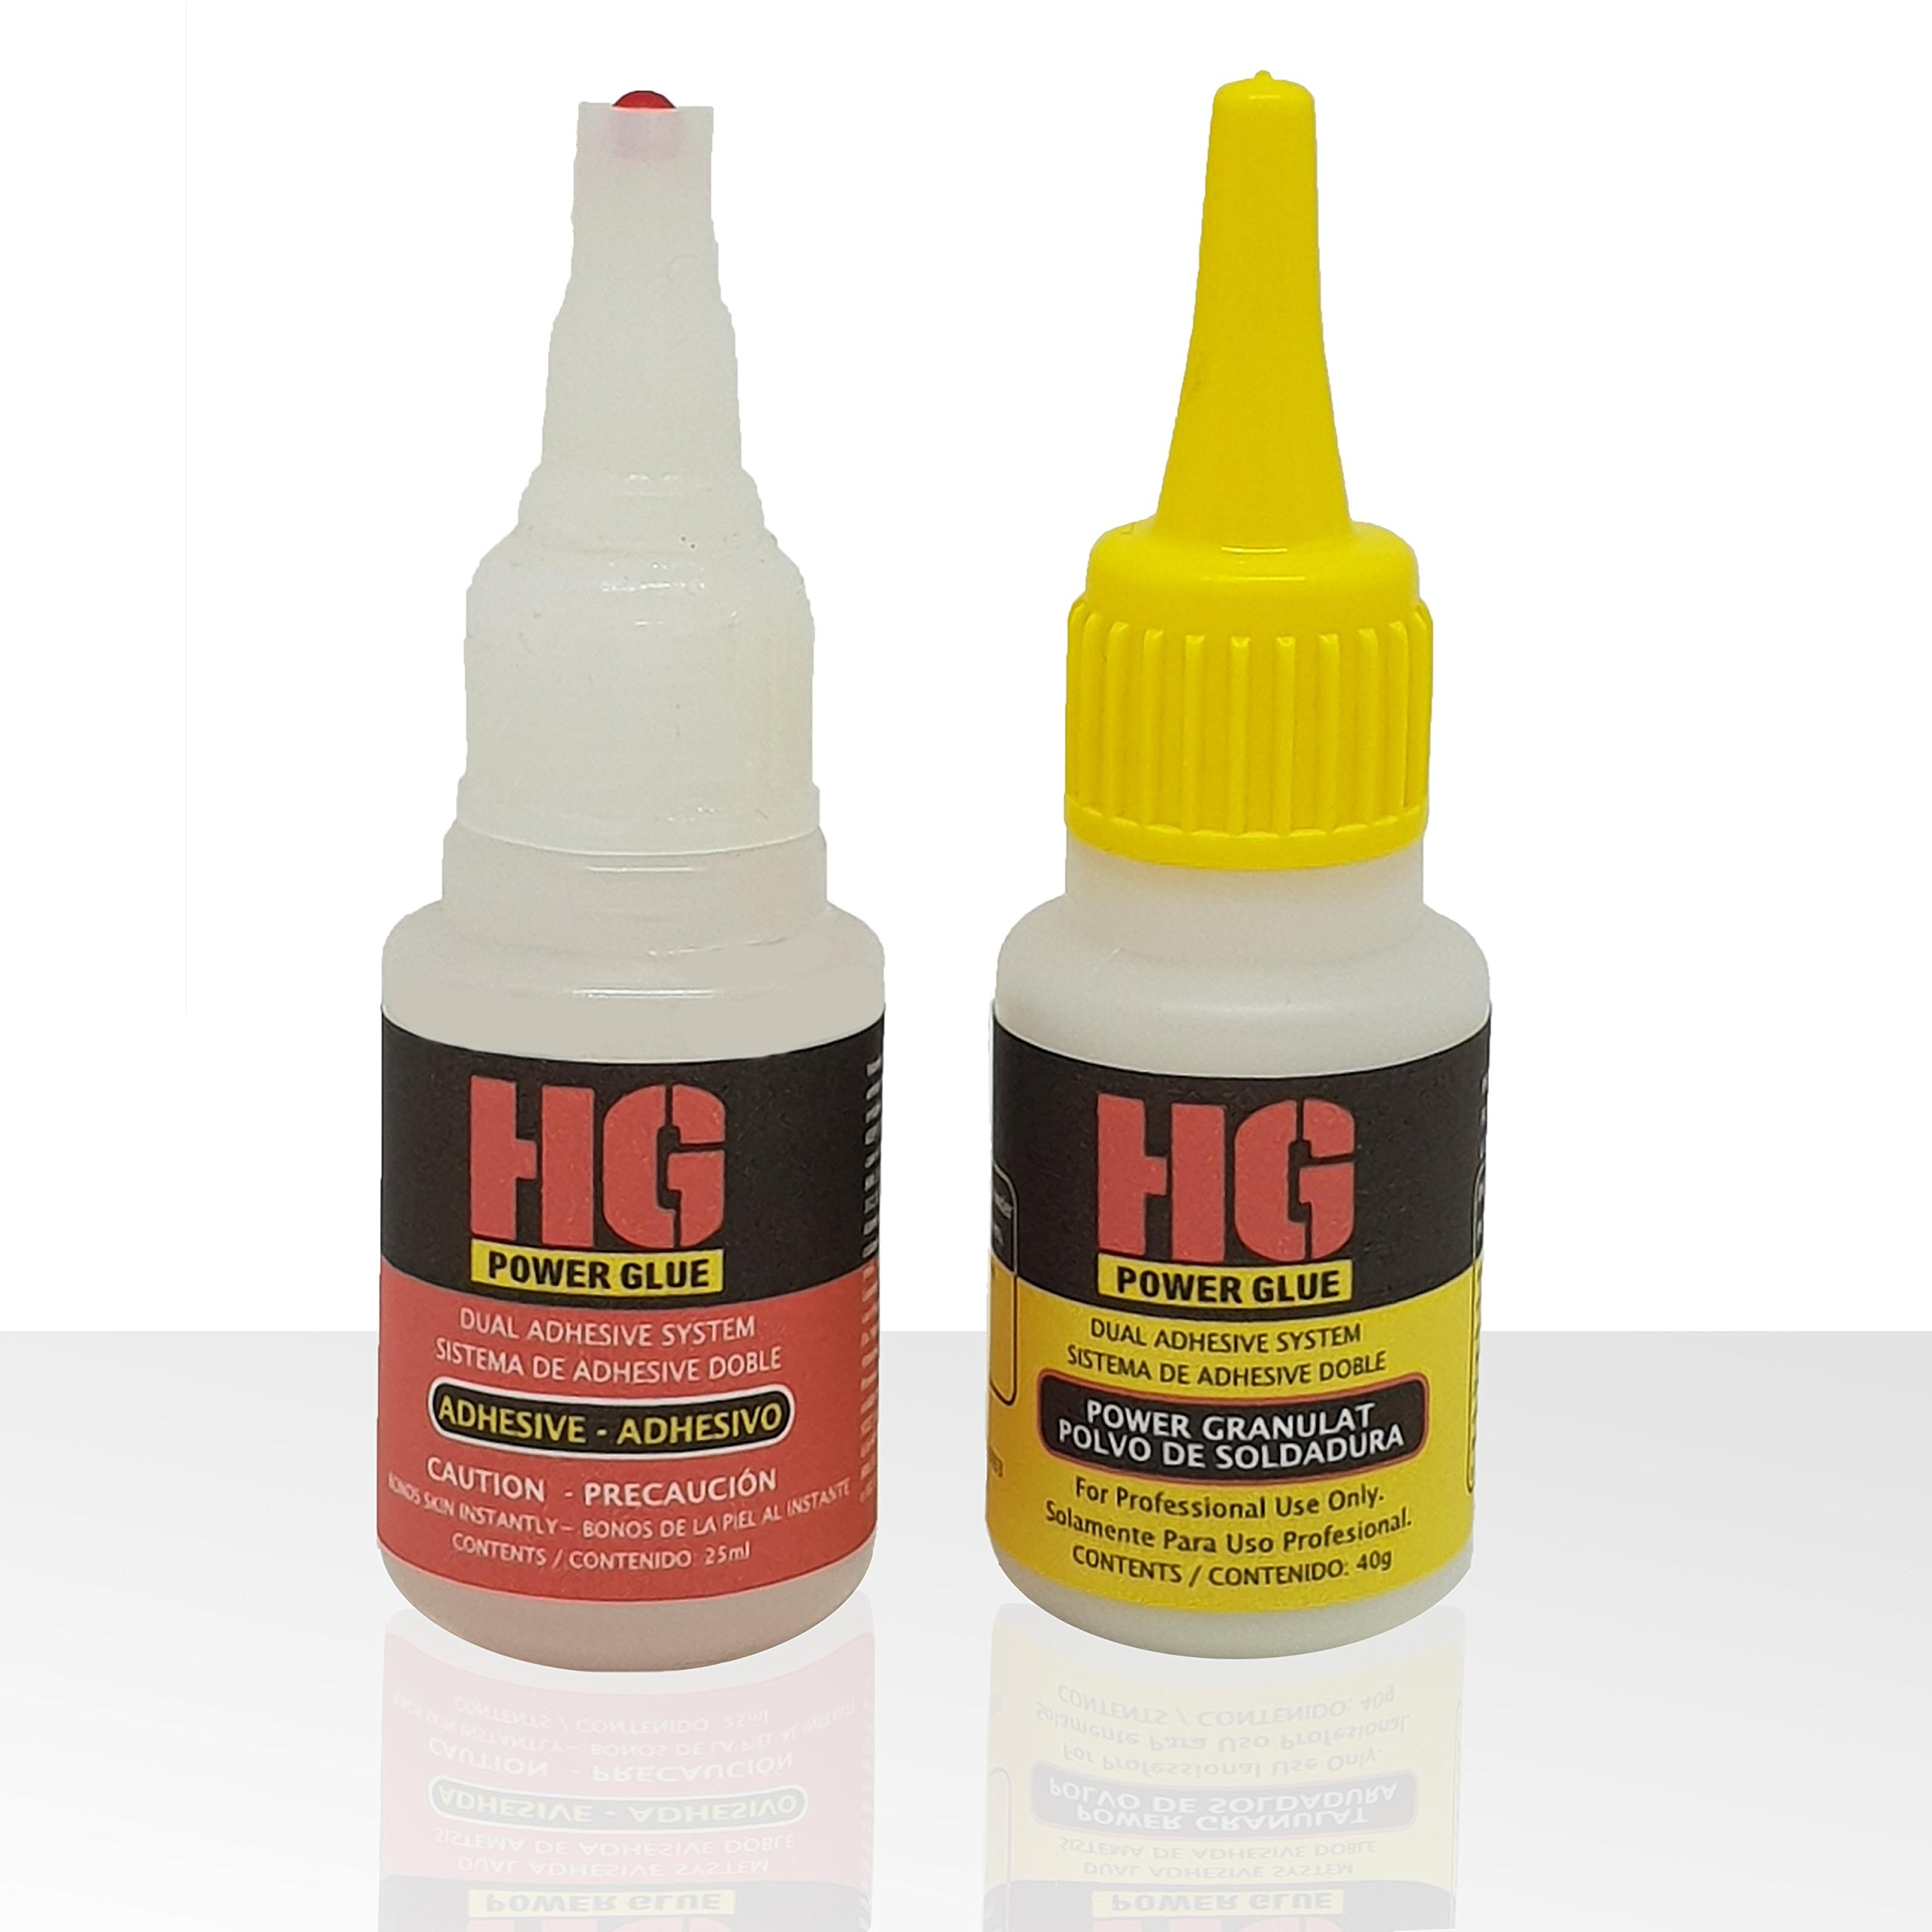 HG Power Glue - Clear Industrial Strength Glue with Powder, The Super-Glue for Nearly All Kind of Plastic, PVC, Wood, Metal and Many More, Also Perfect as Model Glue (1 Pack, 25ml+40g)